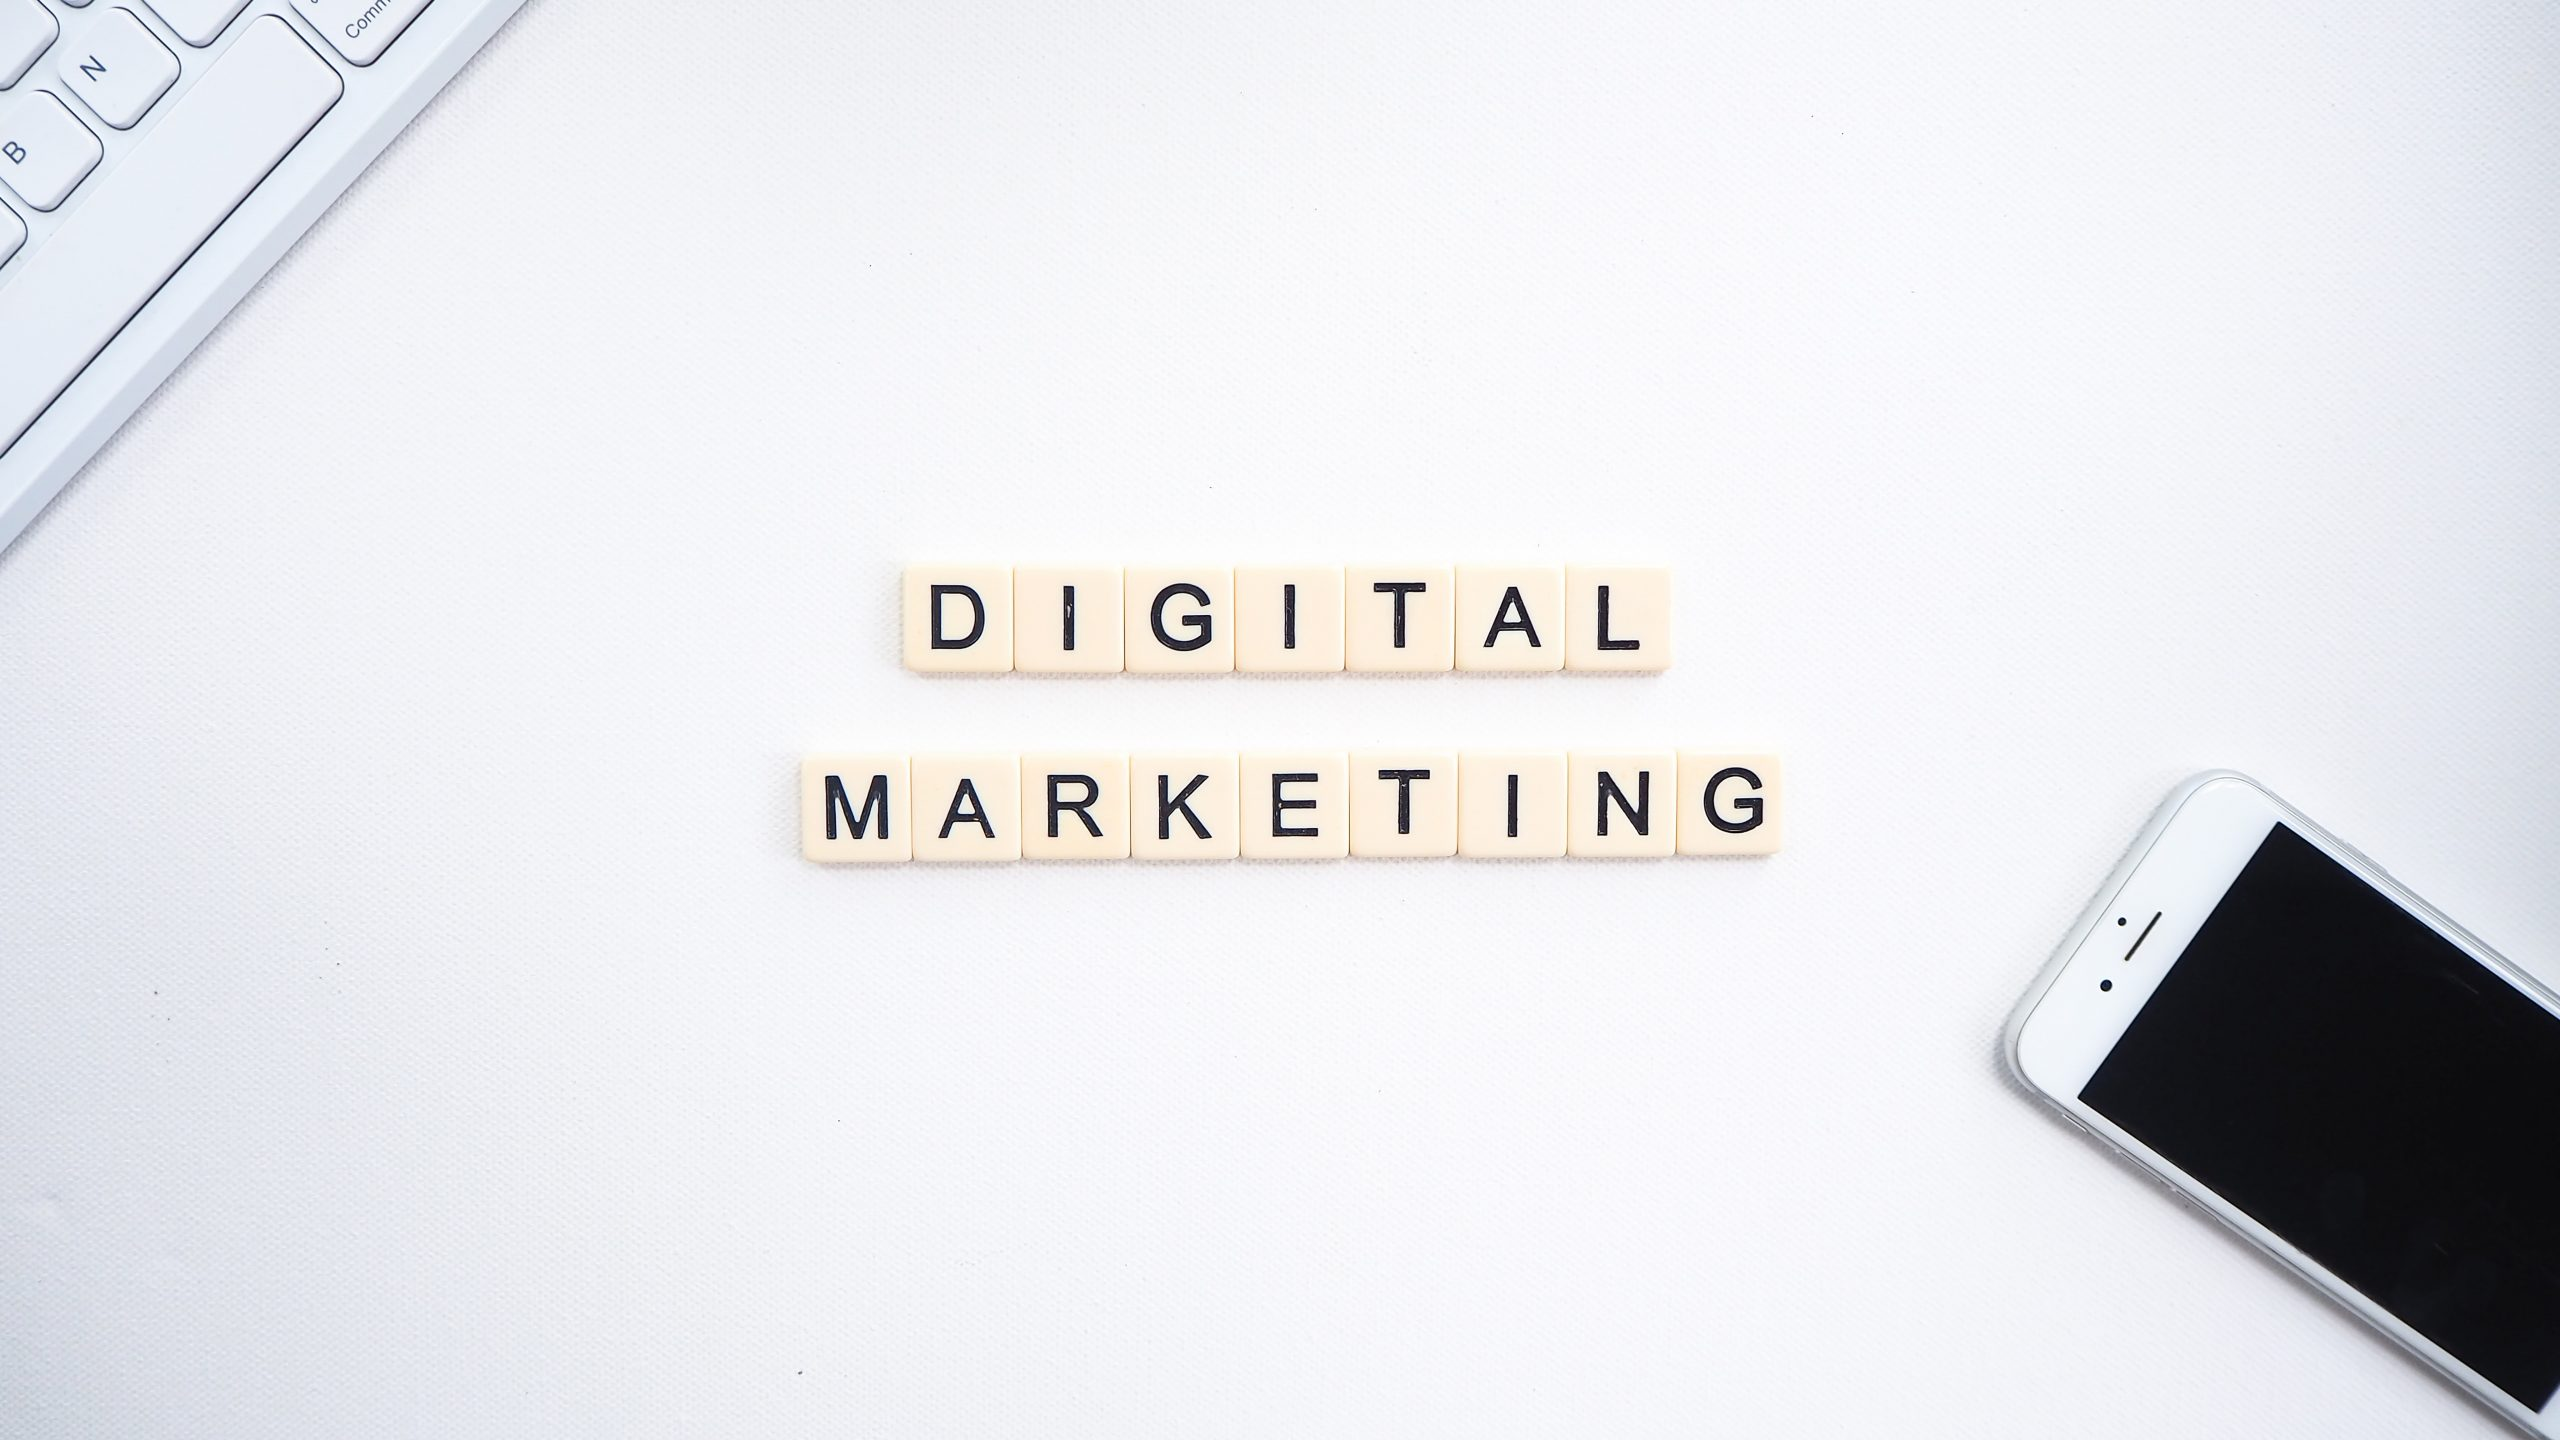 Why Do Small Business Companies Need Digital Marketing Services?